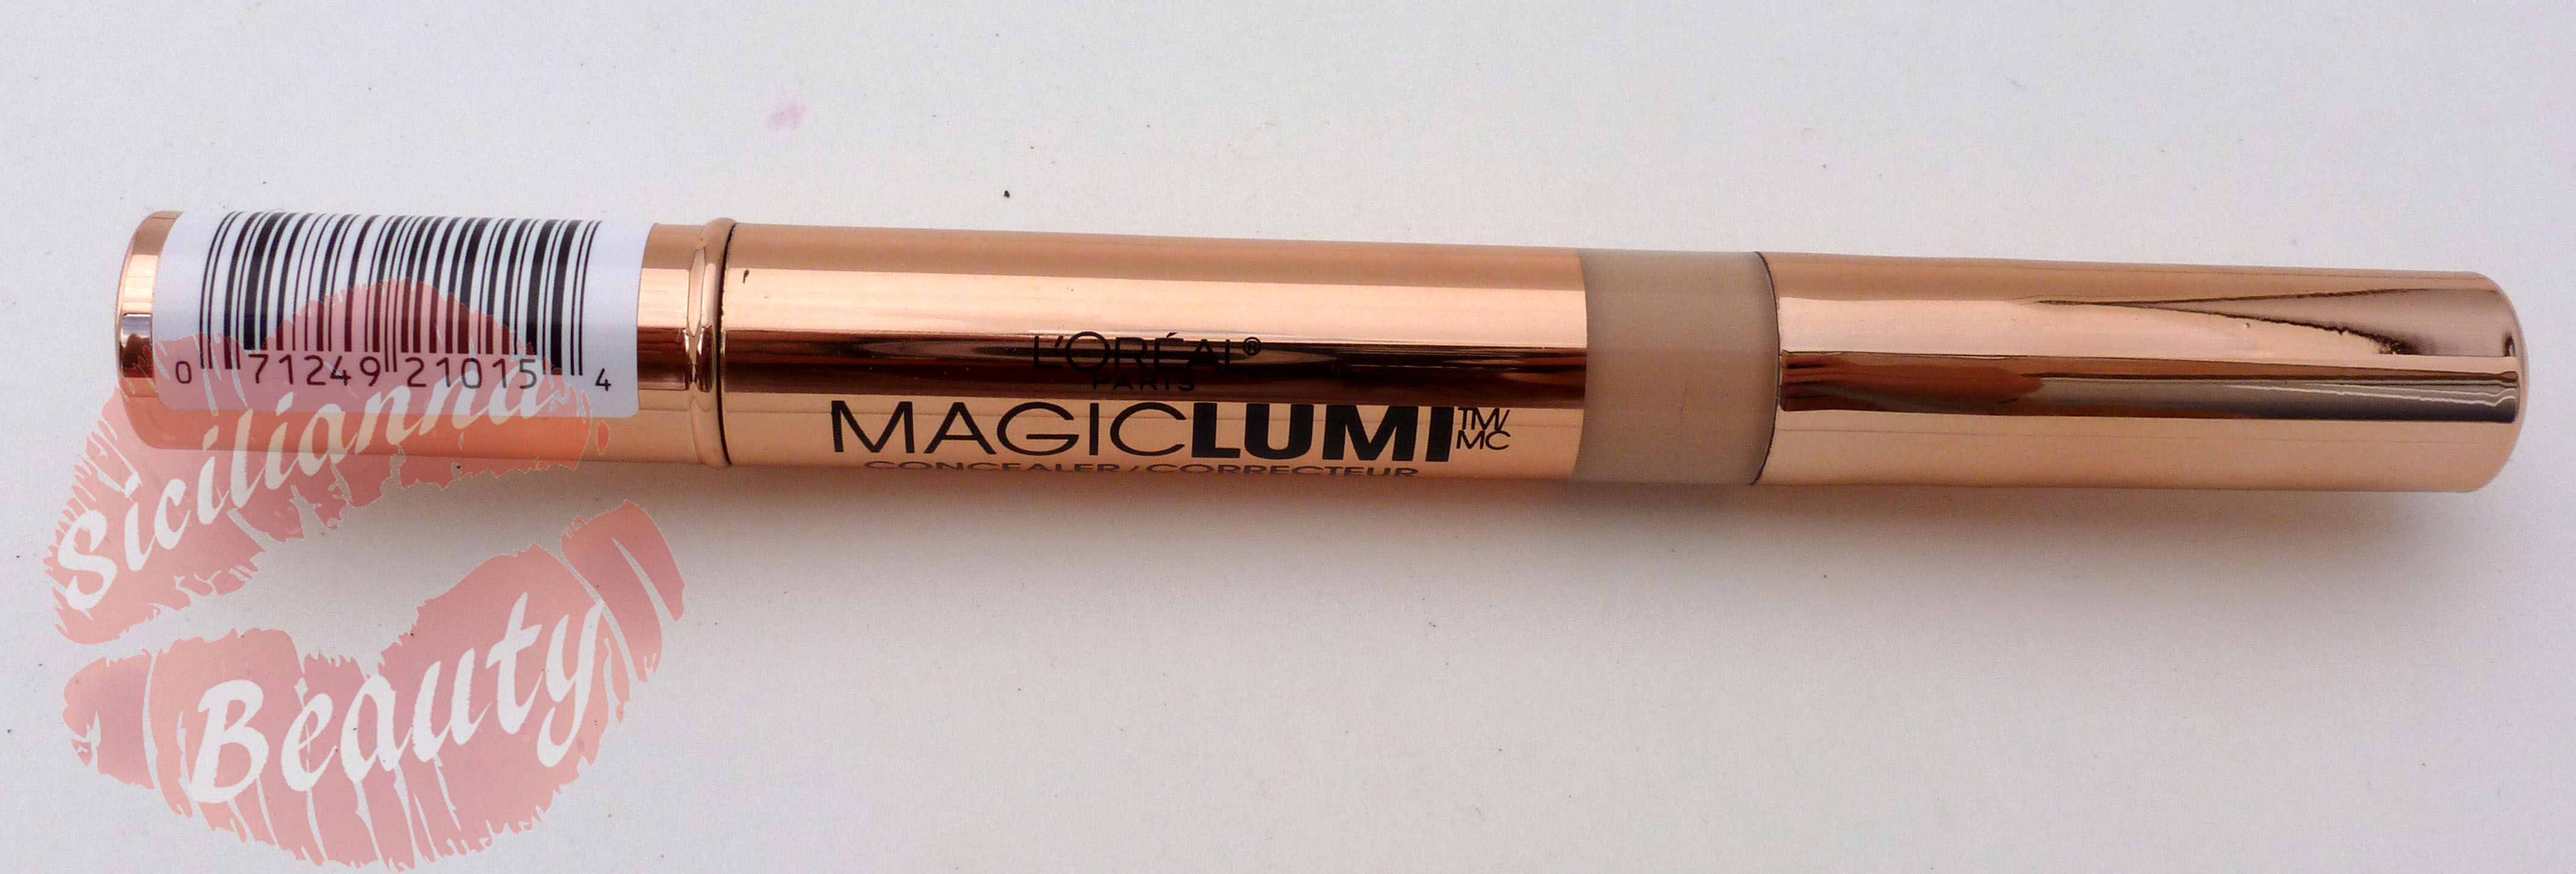 REVIEW: L'Oreal MagicLumi Concealer in Medium